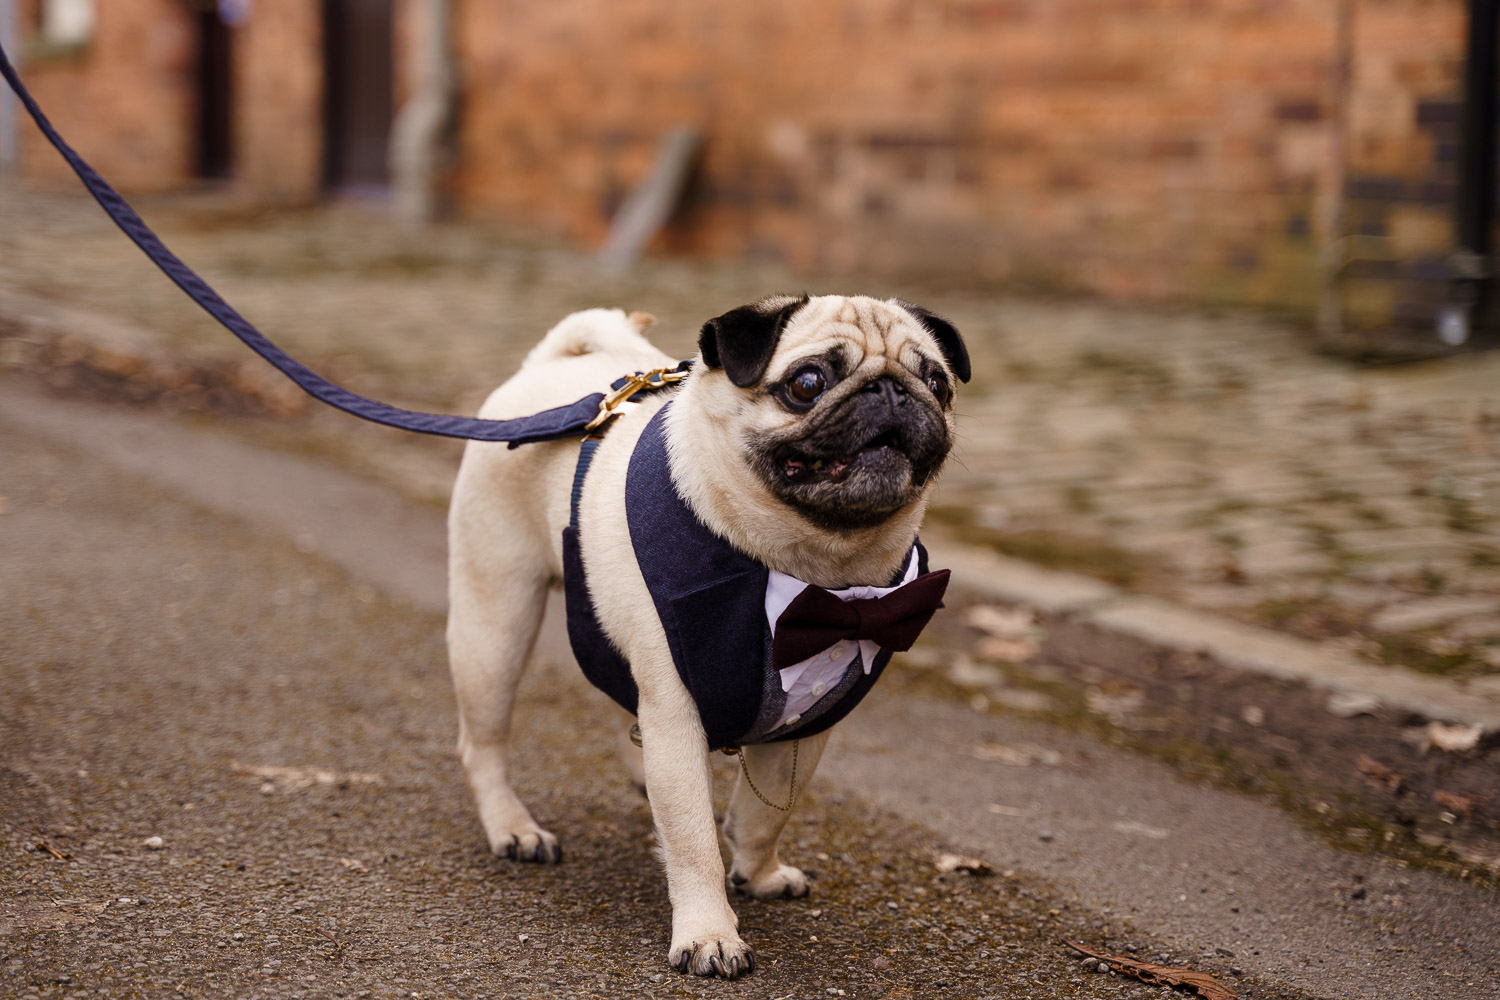 dog friendly wedding- dogs at weddings- katherine and her camera- dog wedding accessories-unconventional wedding- wedding planning advice- pets at weddings- pug in tuxedo